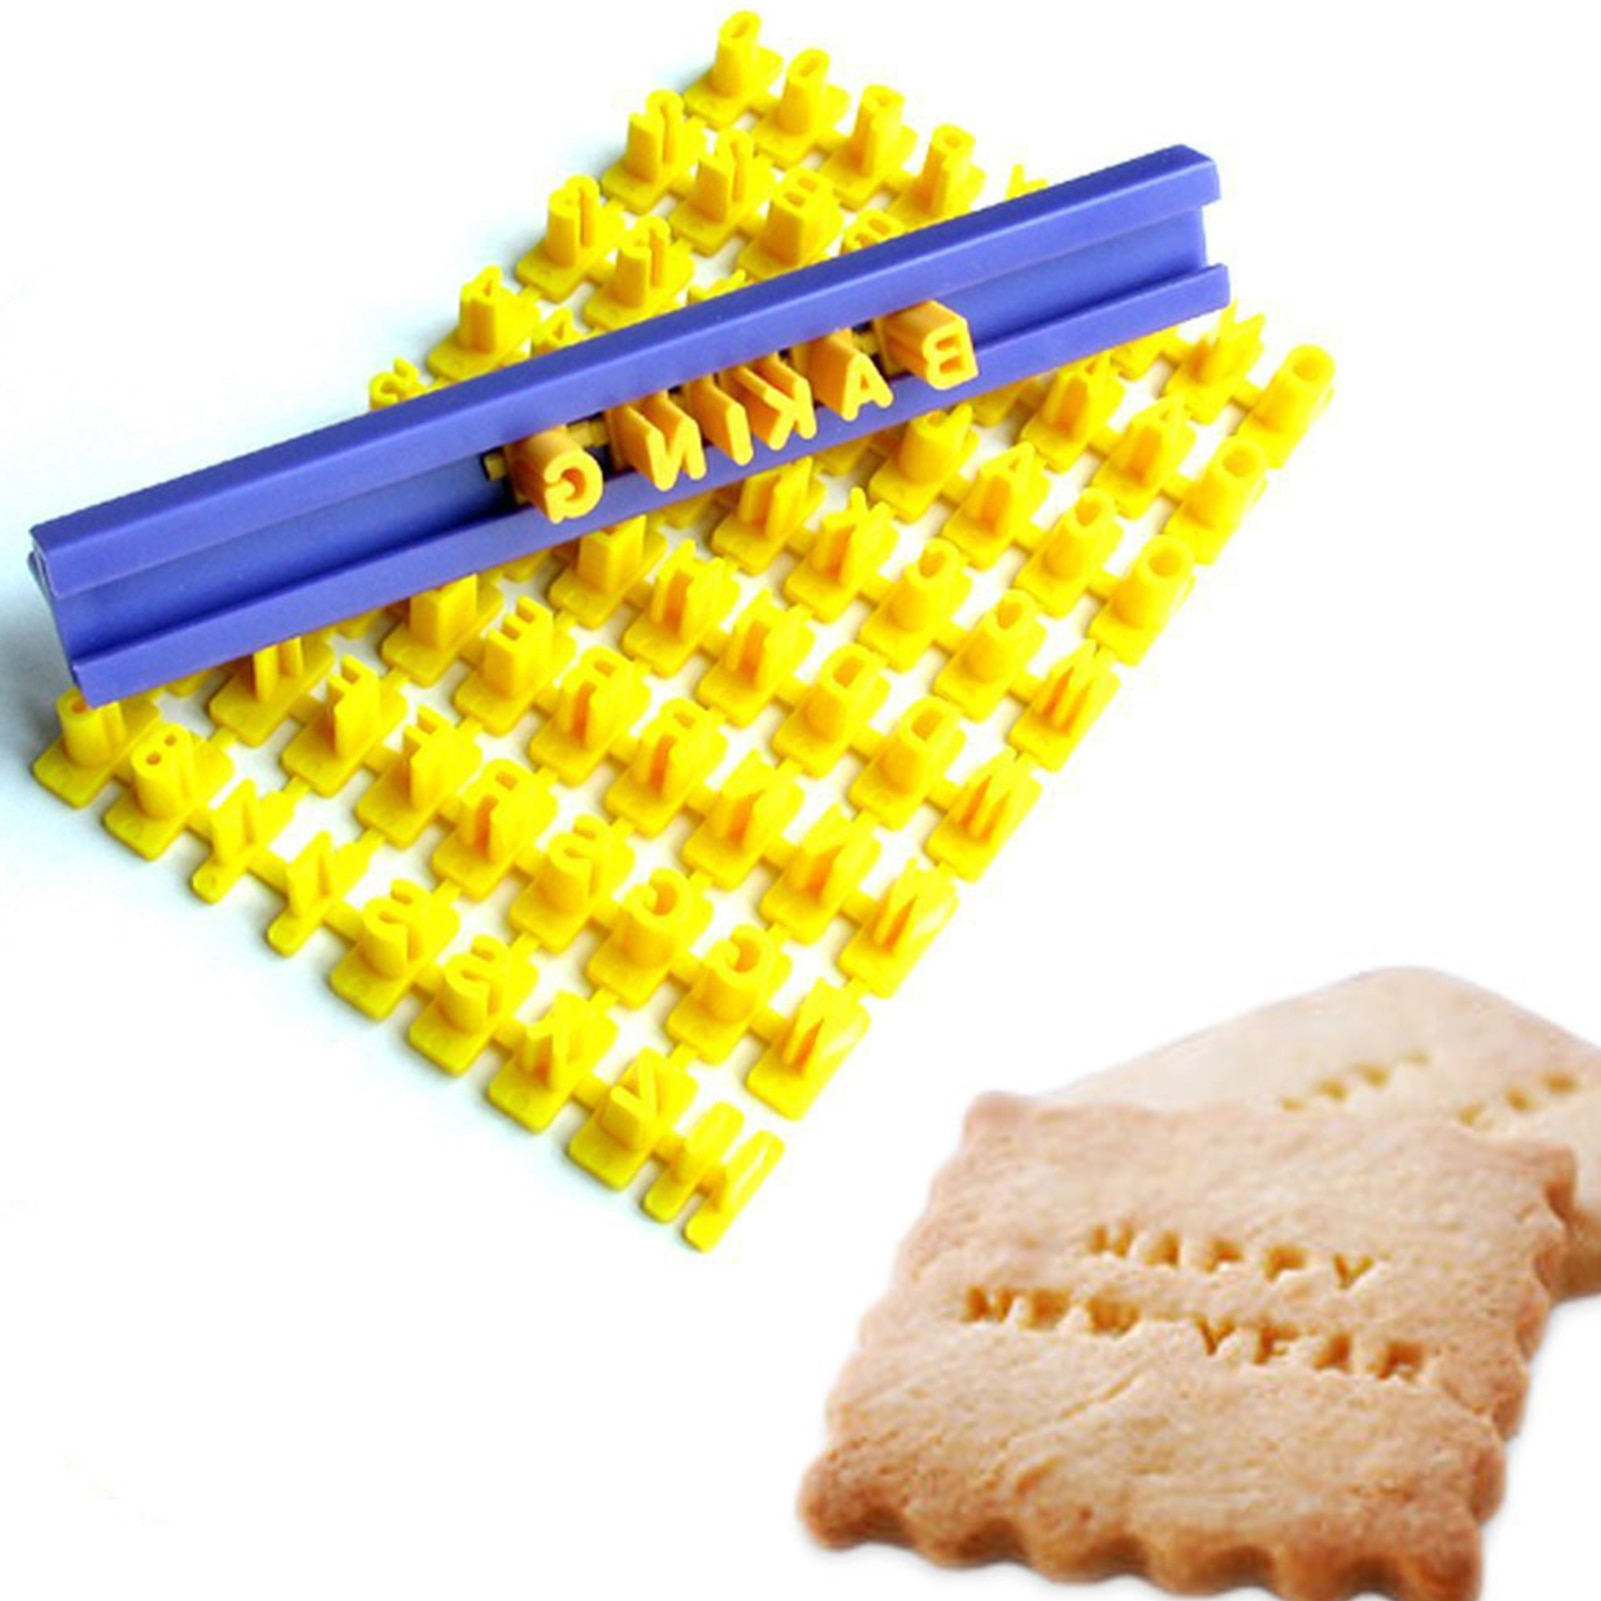 New Letter Biscuit Cake Mold Kitchen Cutter Birthday Party Decoration Baking Mold Household Plastic DIY Tools